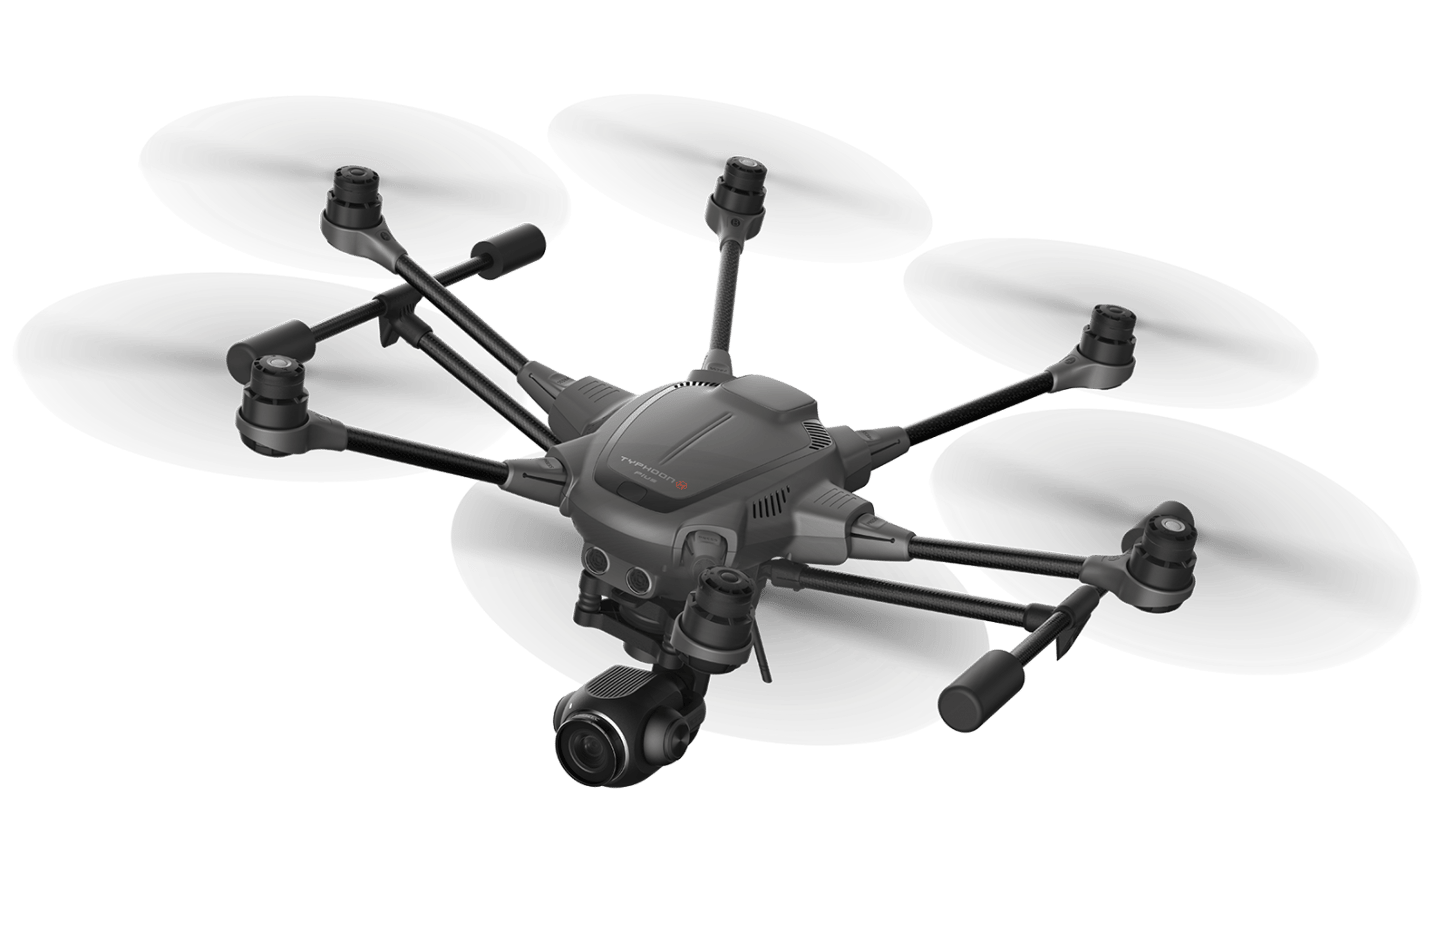 Yuneec'sTyphoon H Plusis a 4K camera drone with retractable landing gear